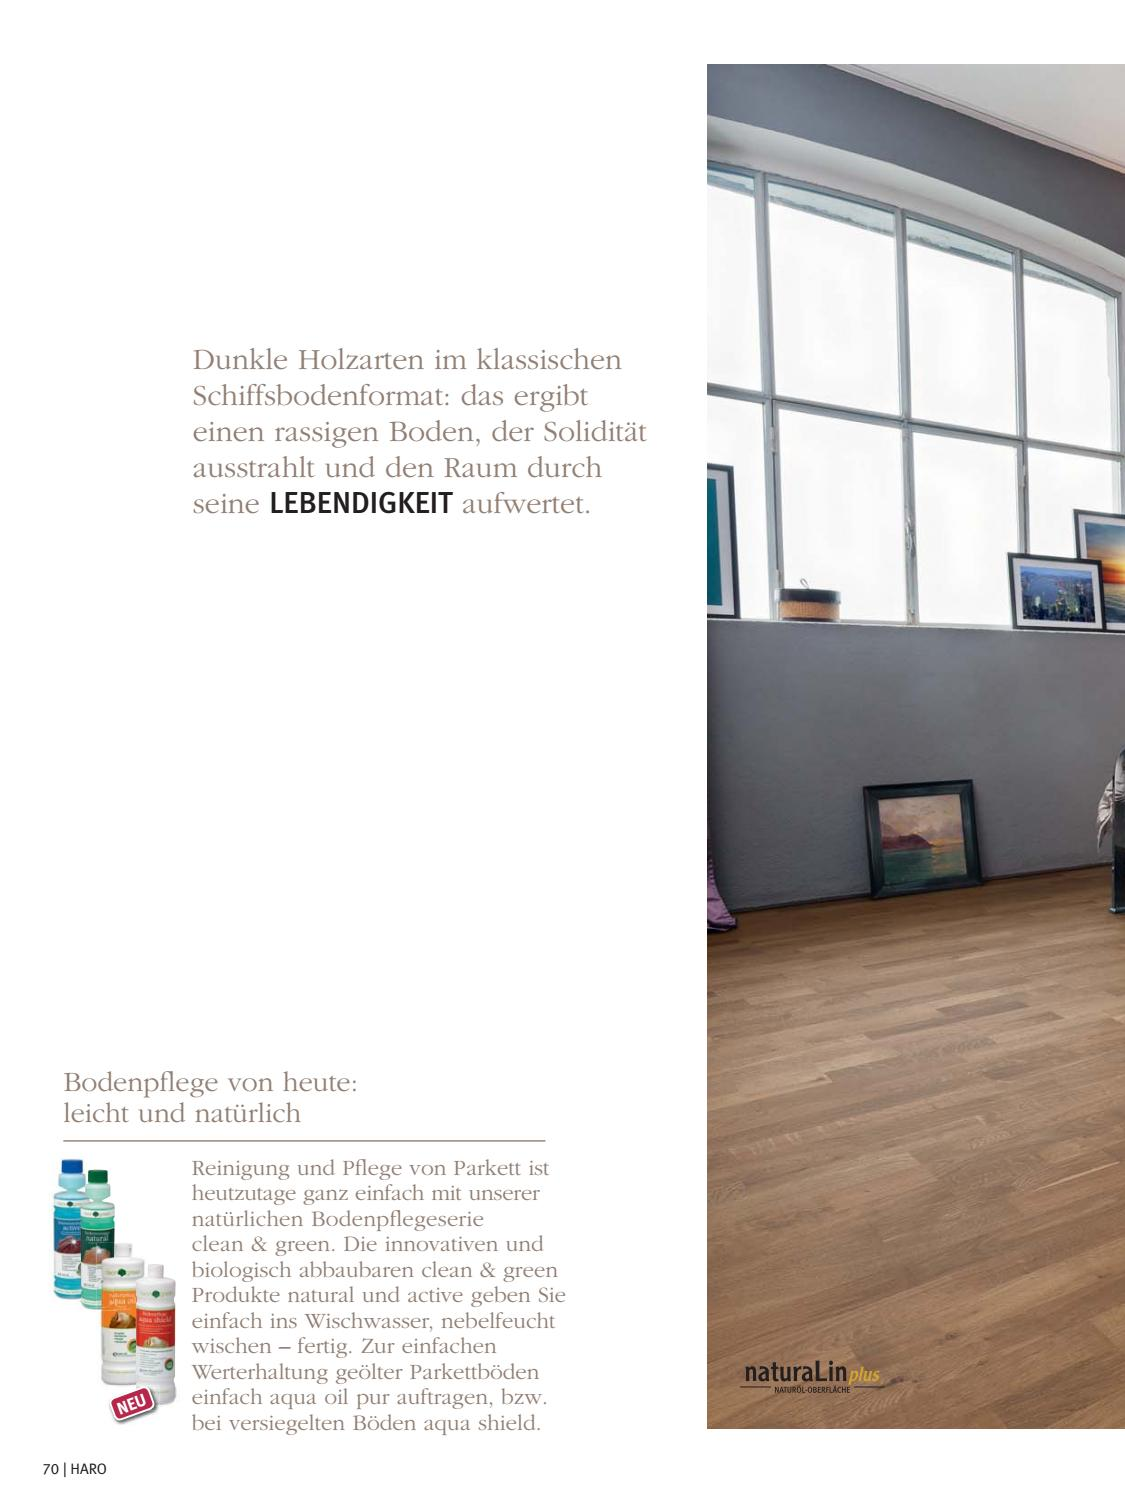 Parkettboden Wischen Haro Parkettboden By Kaiser Design Issuu